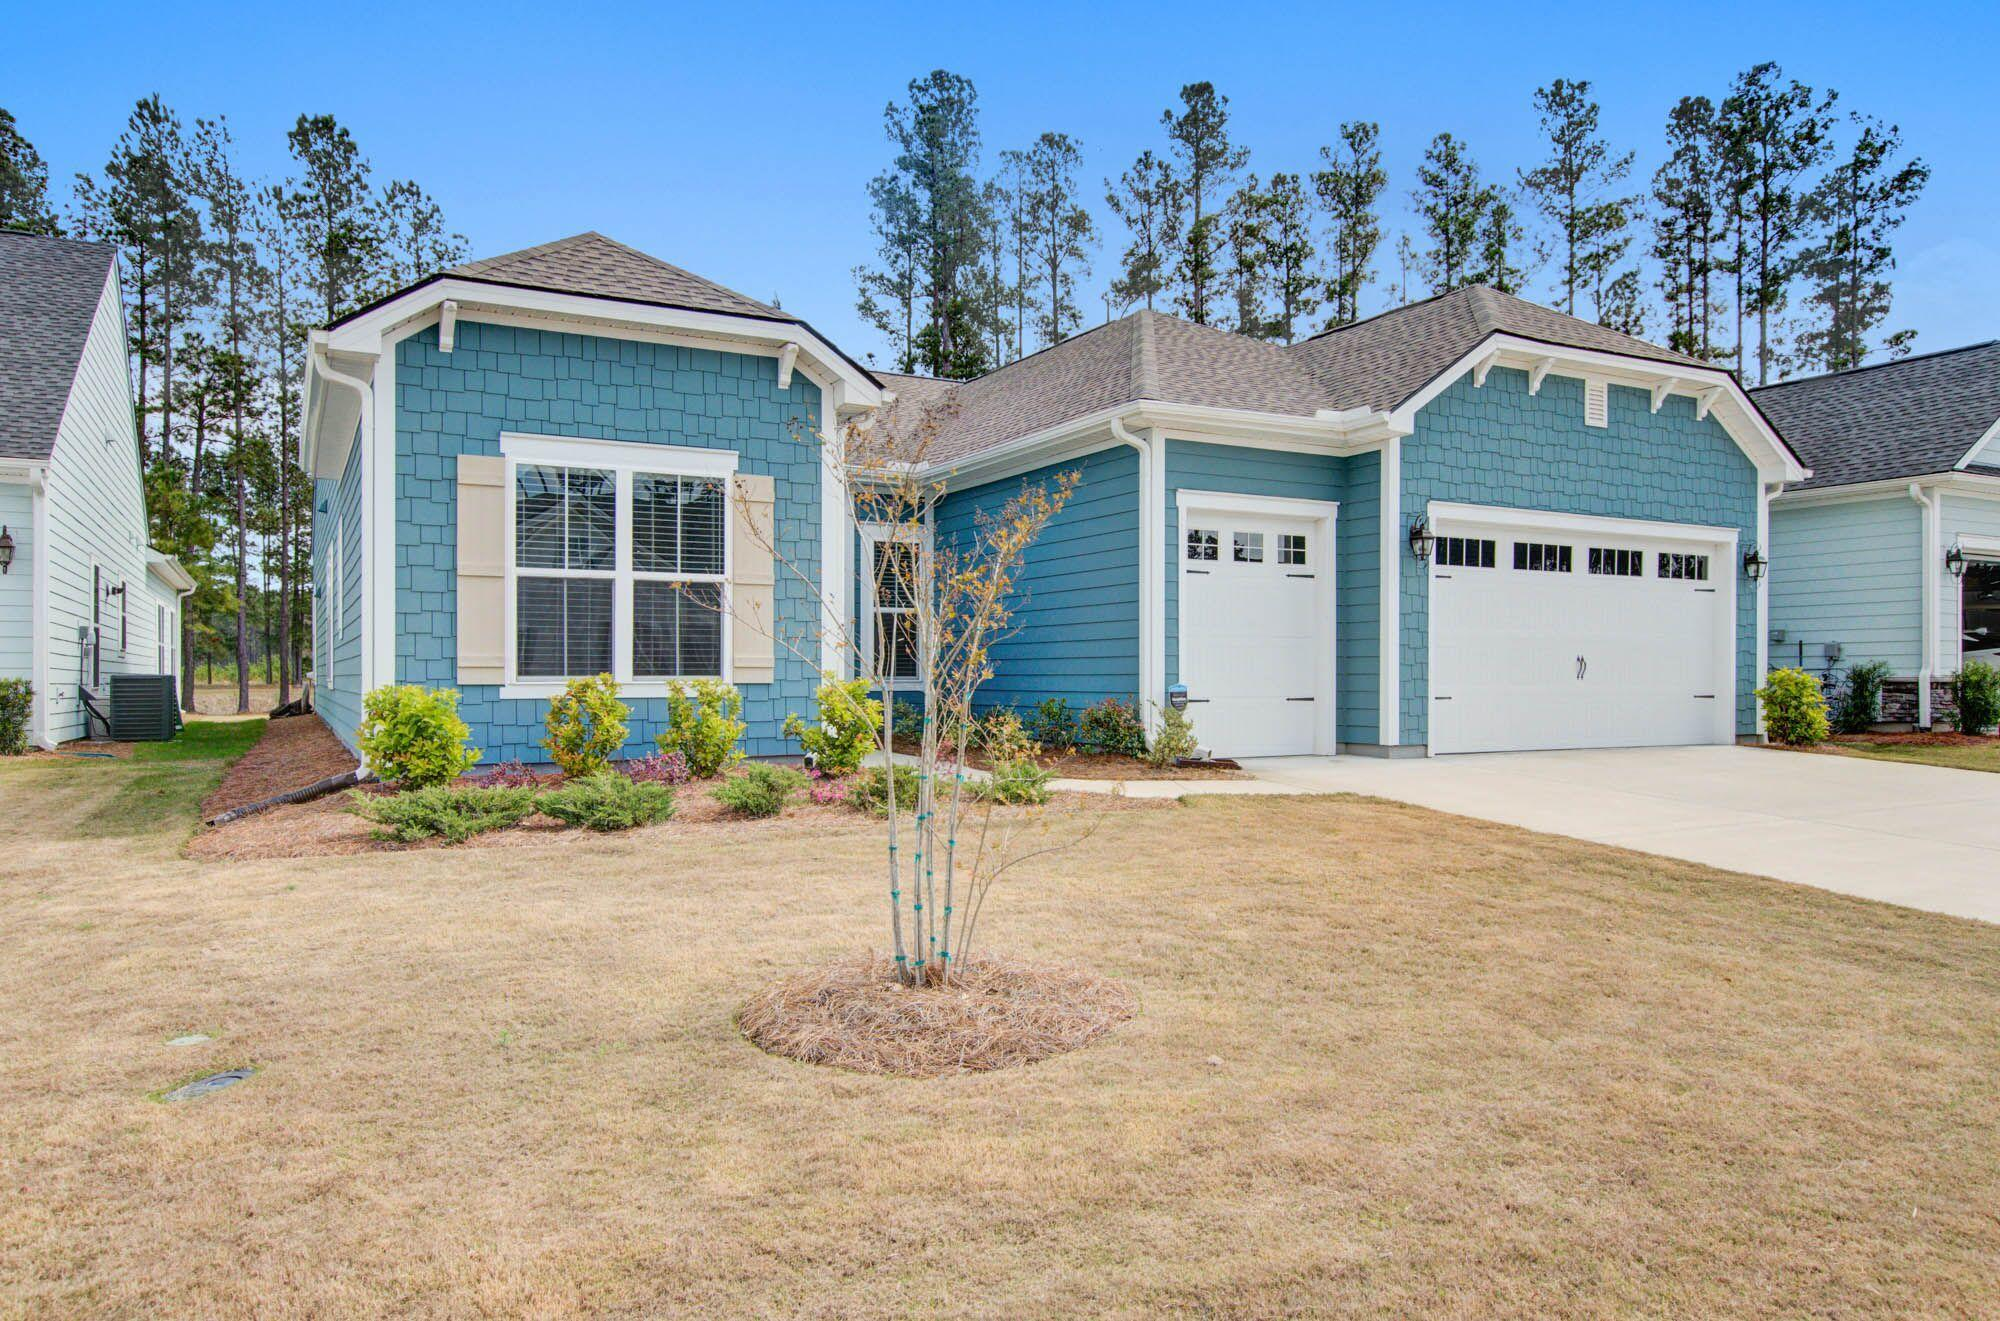 Cane Bay Plantation Homes For Sale - 110 Bluff Isle, Summerville, SC - 0